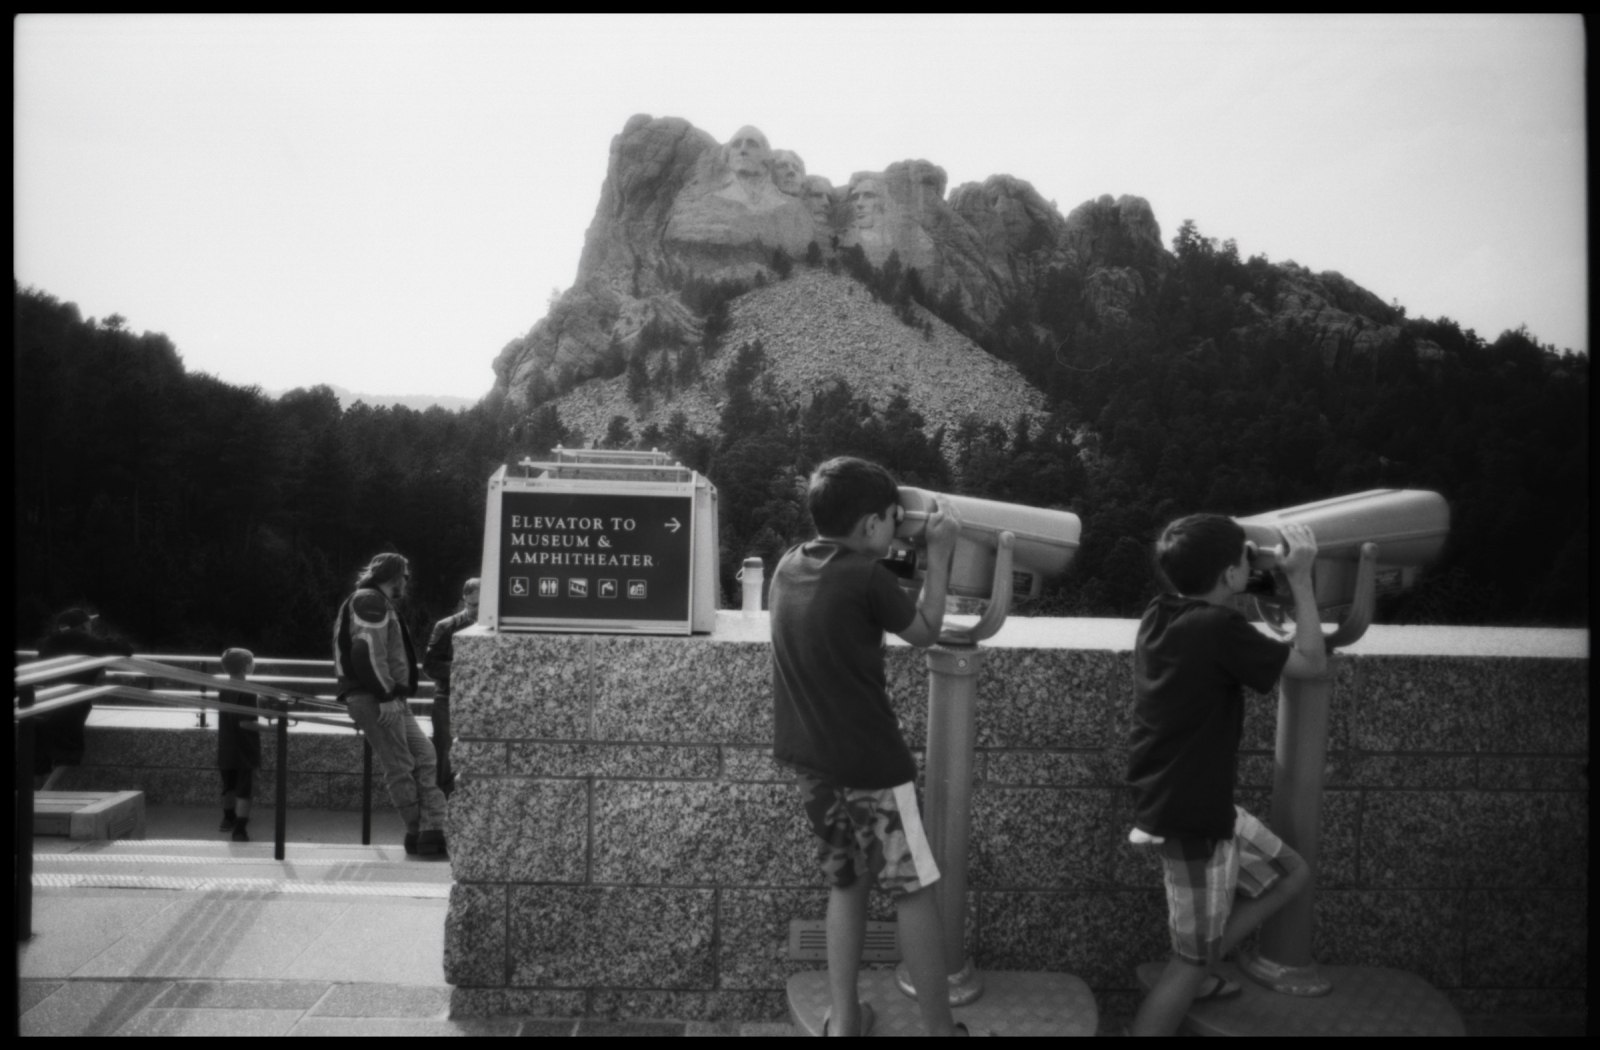 Mt. Rushmore, National Monument, South Dakota, August 2015.